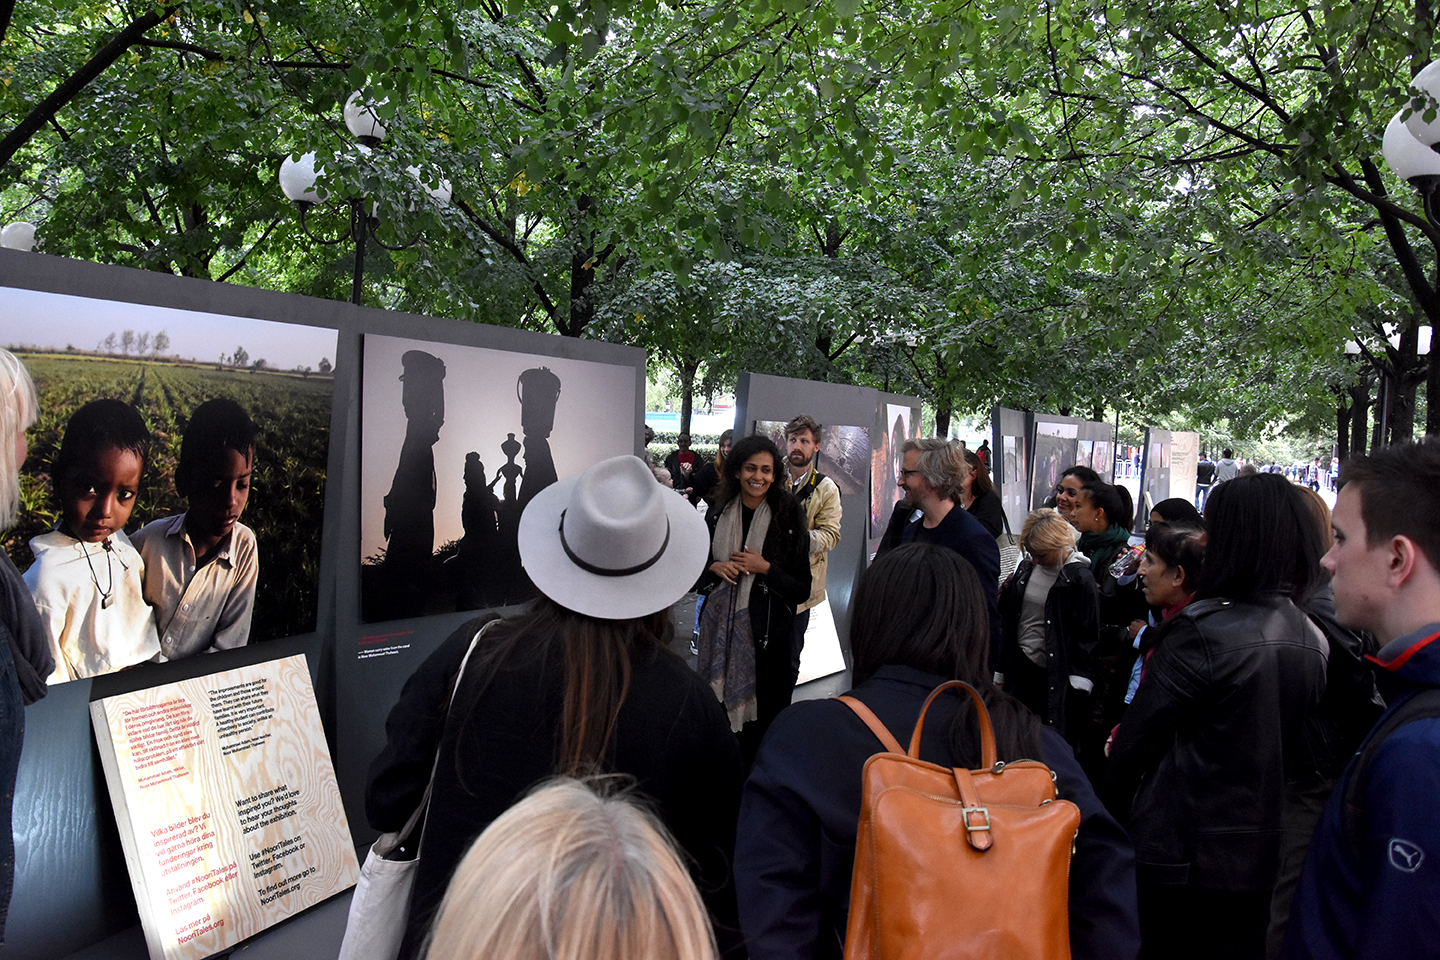 From the private view in the park. More photos below.